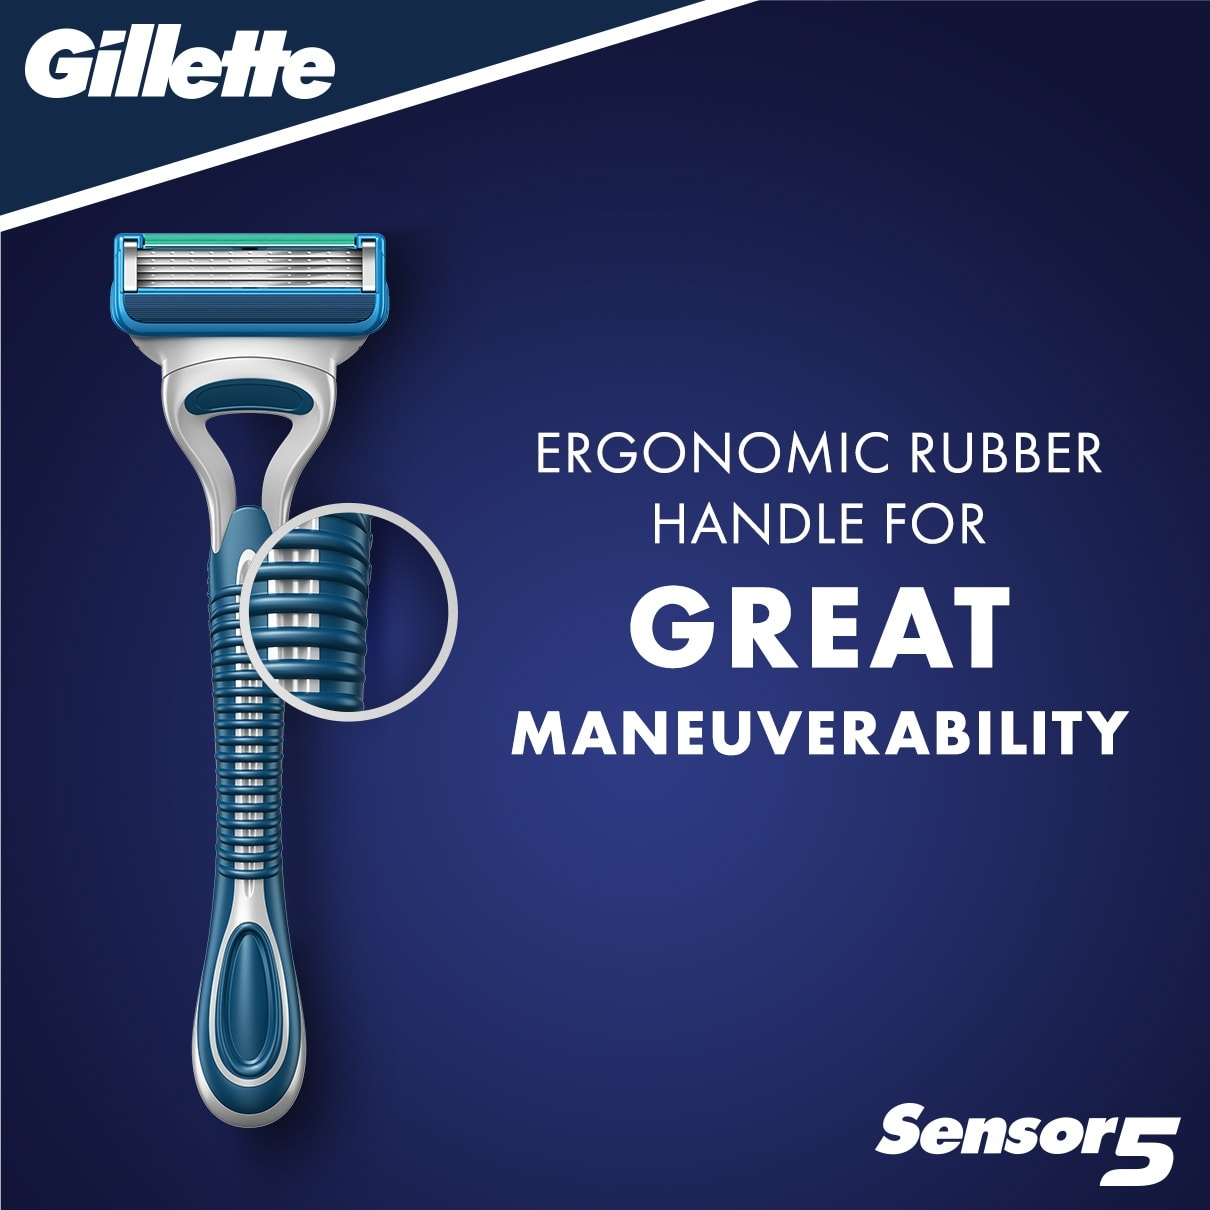 SENSOR®5 DISPOSABLE RAZOR